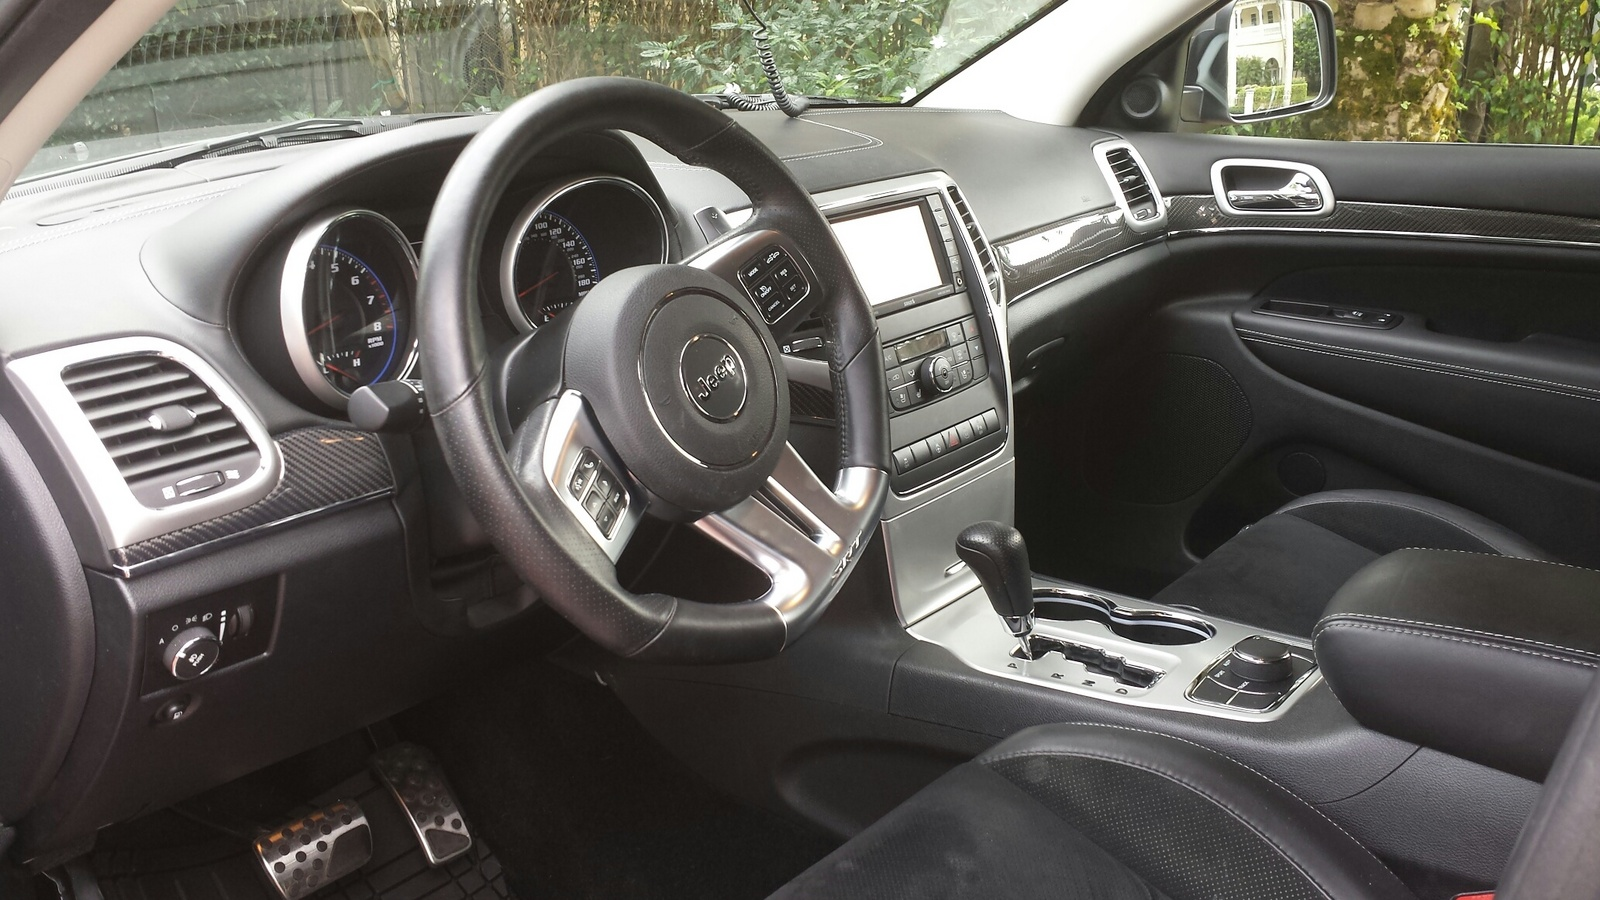 2012 jeep grand cherokee interior pictures cargurus. Black Bedroom Furniture Sets. Home Design Ideas